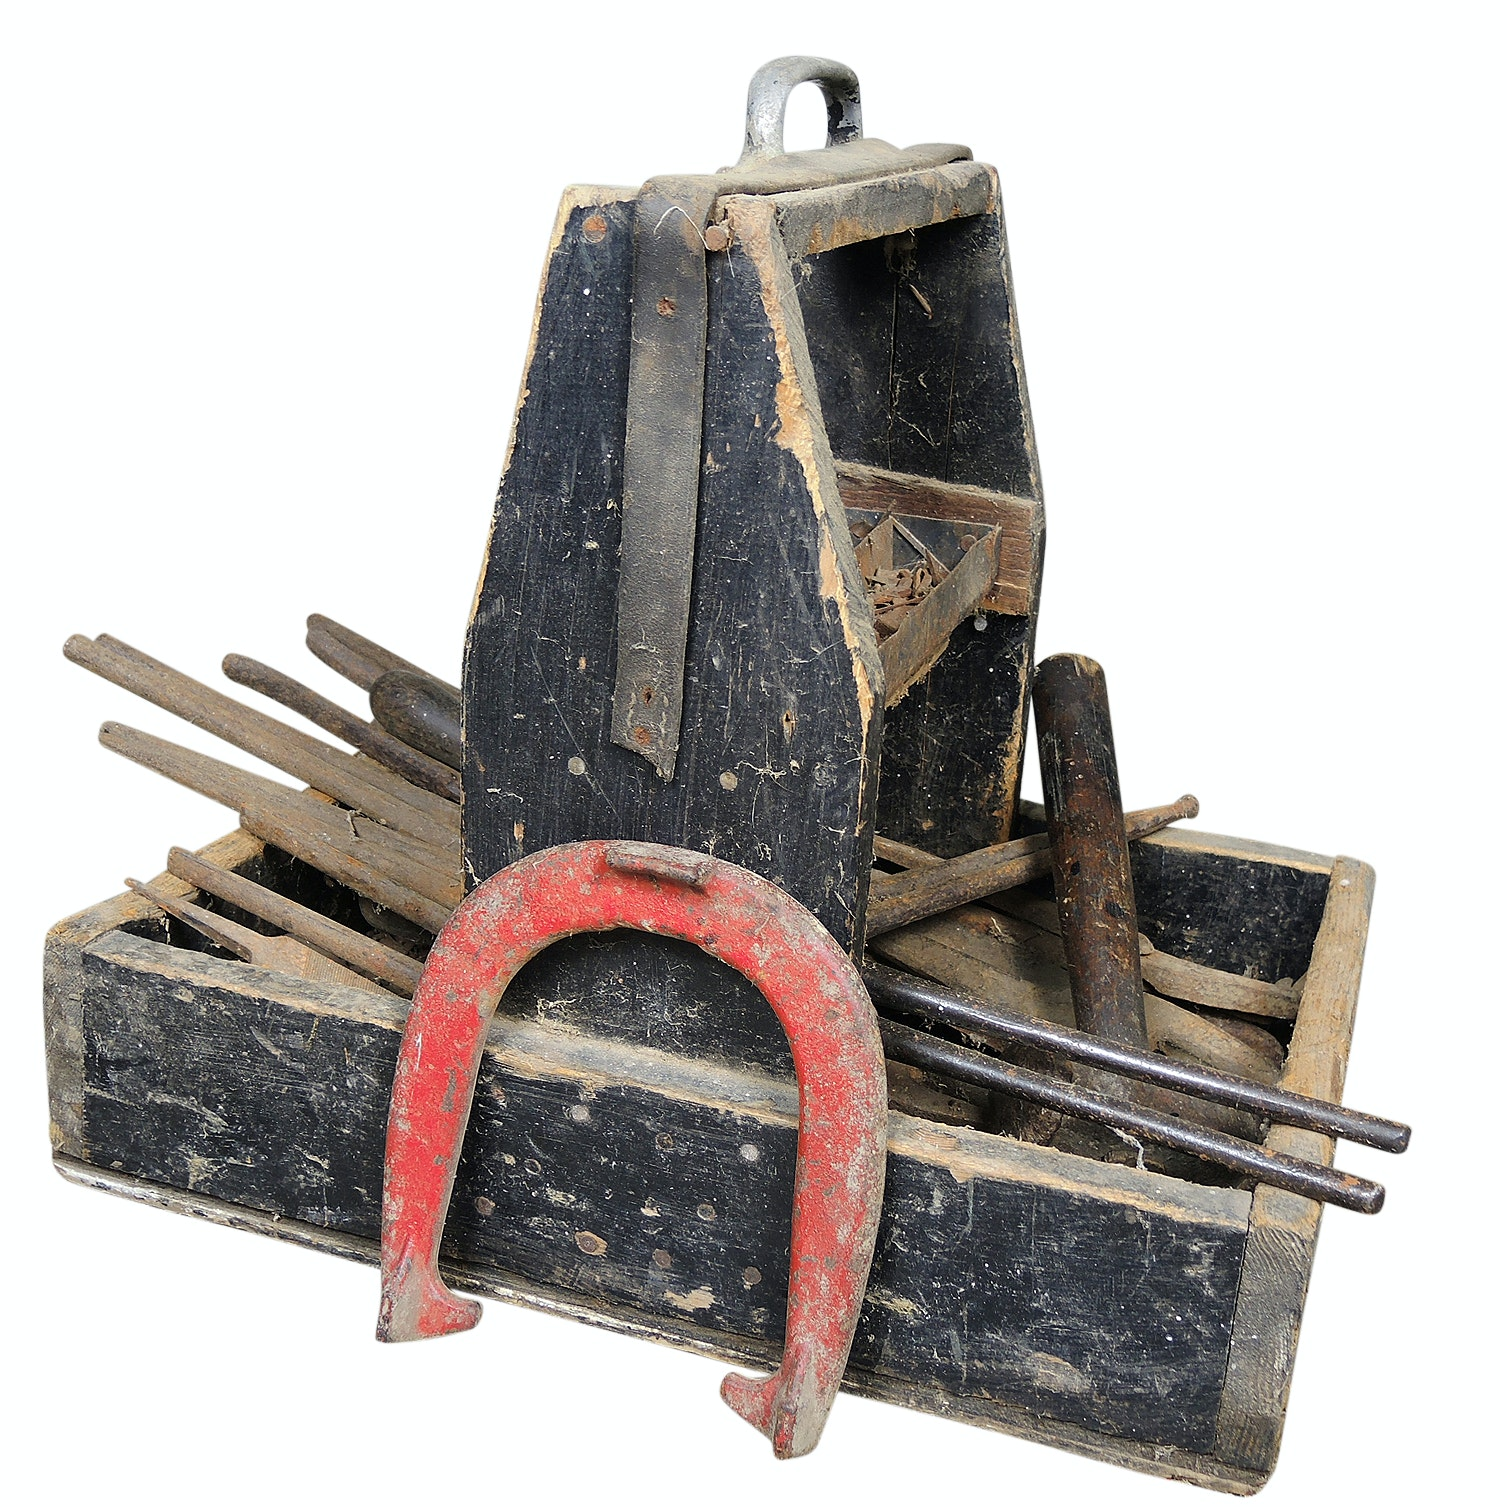 Blacksmith Tools and Farrier Tool Box